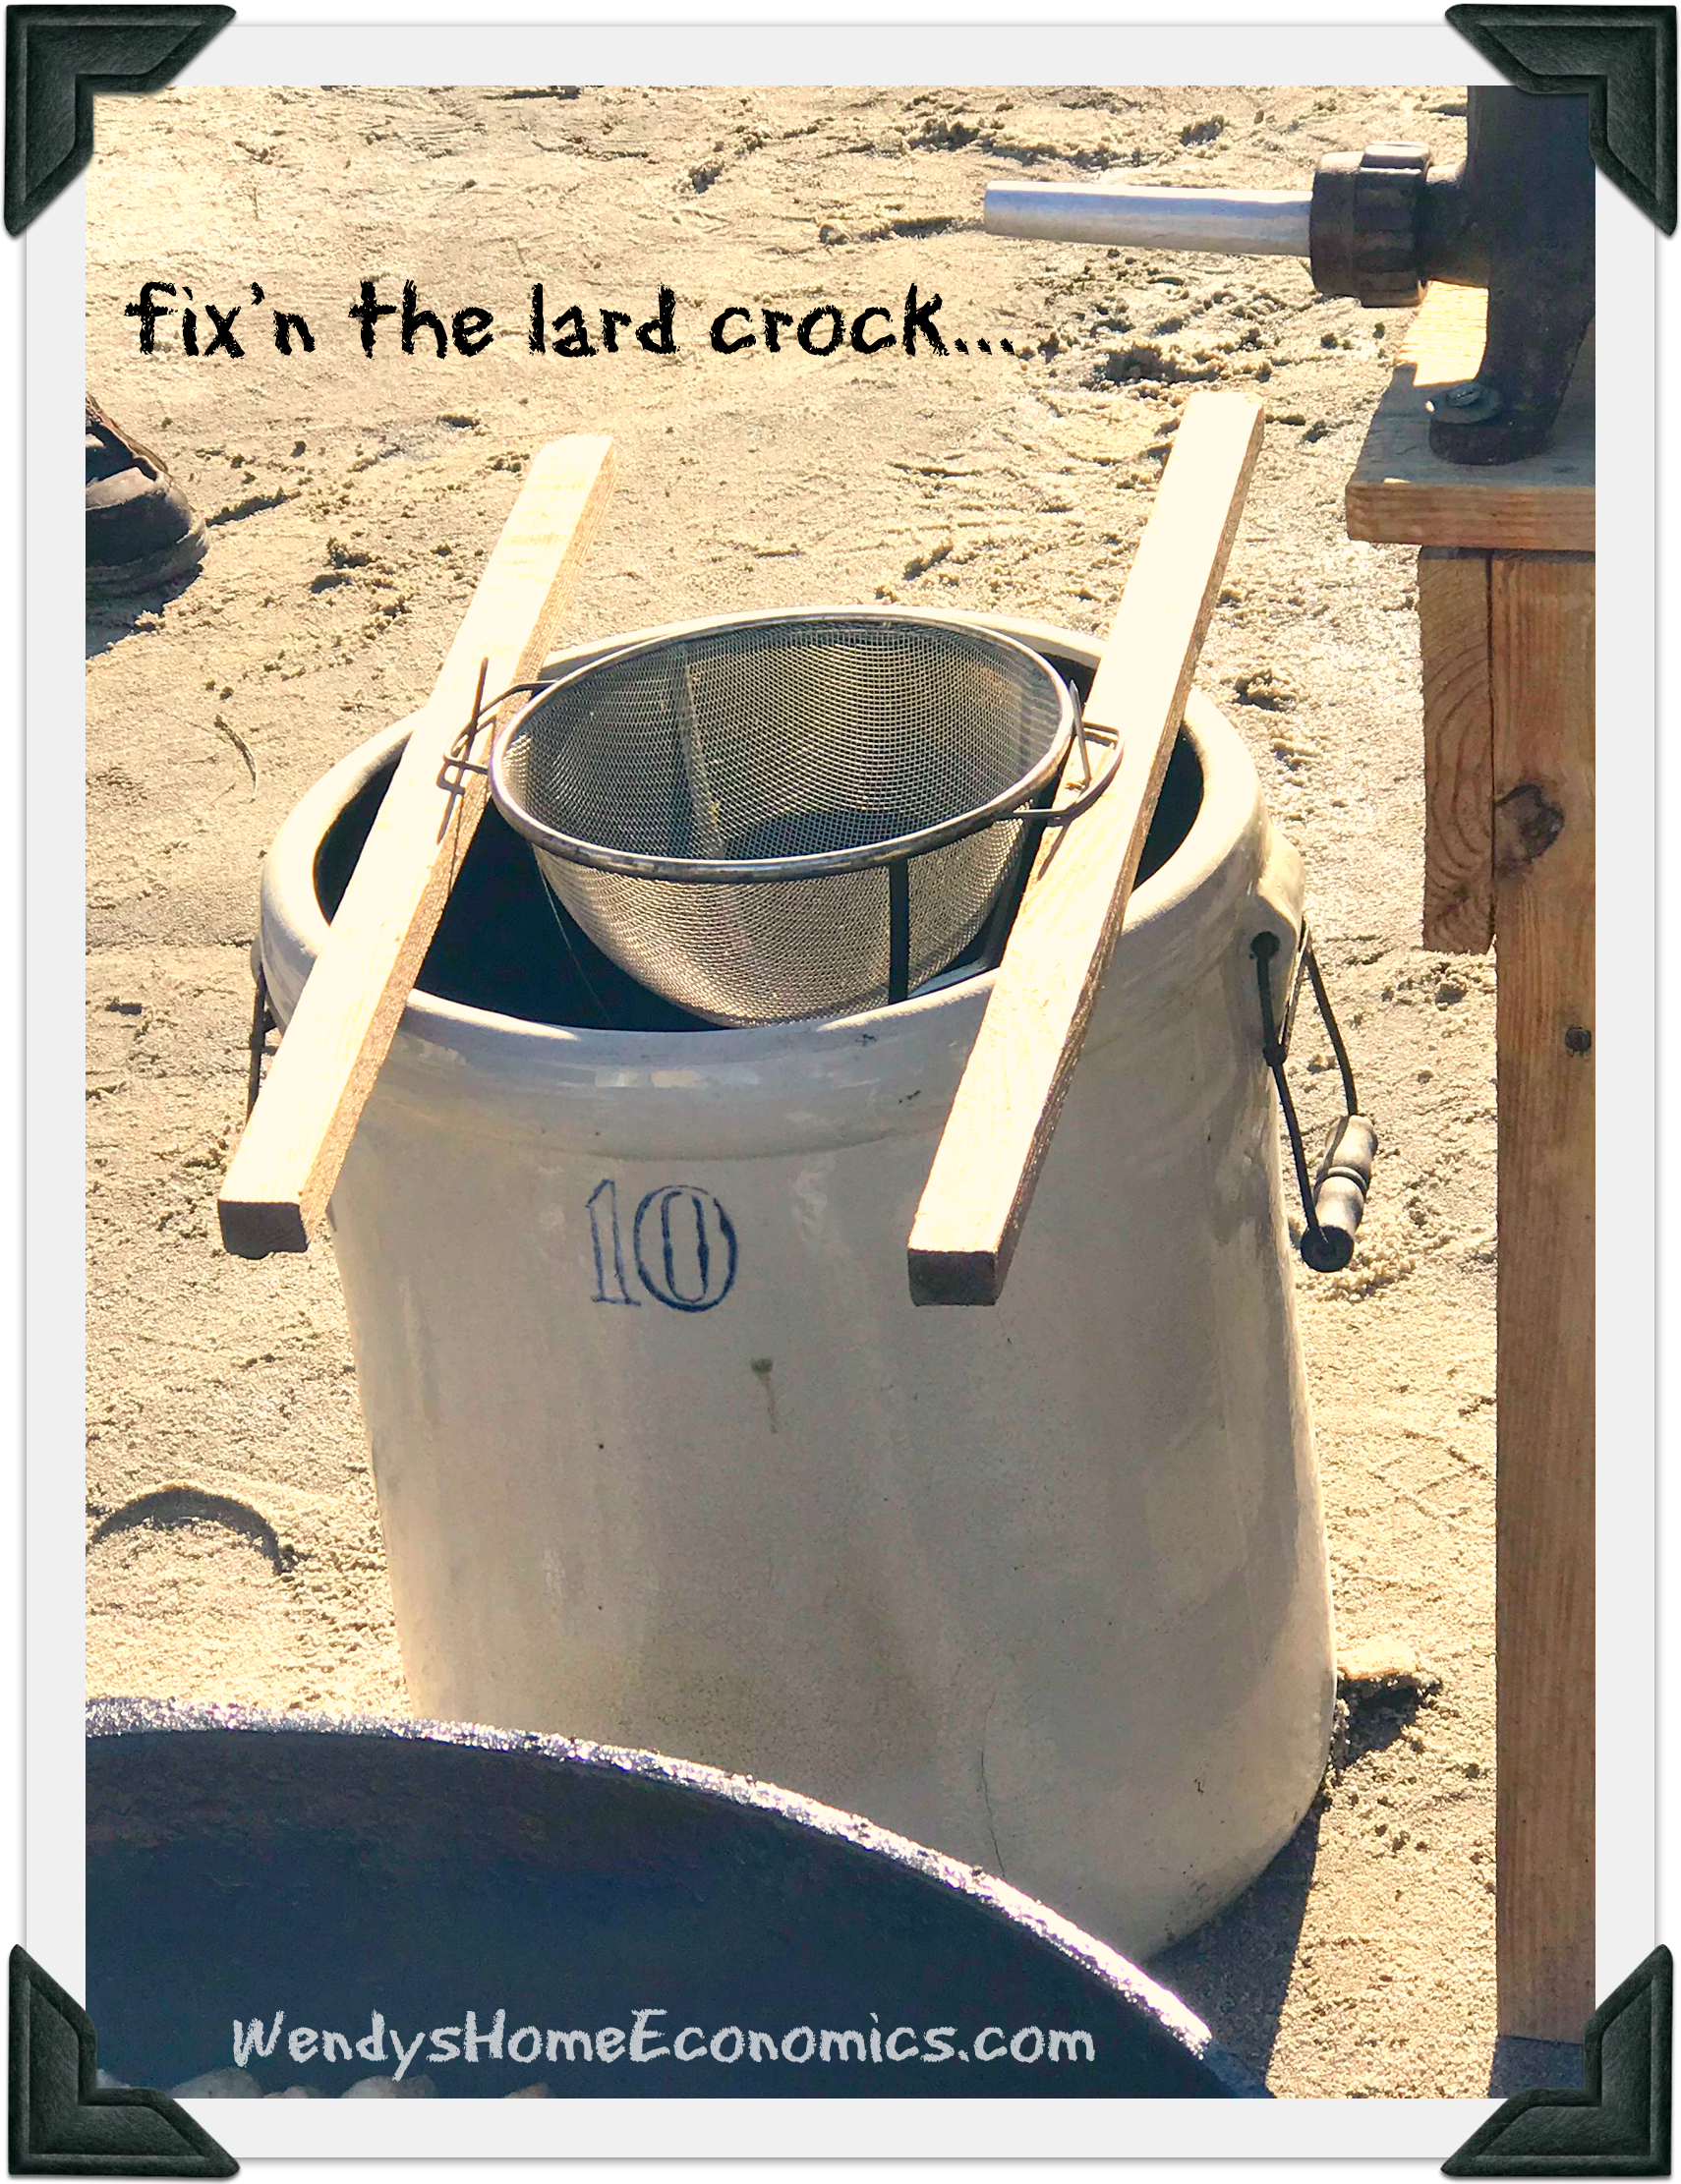 fix'n the lard crock